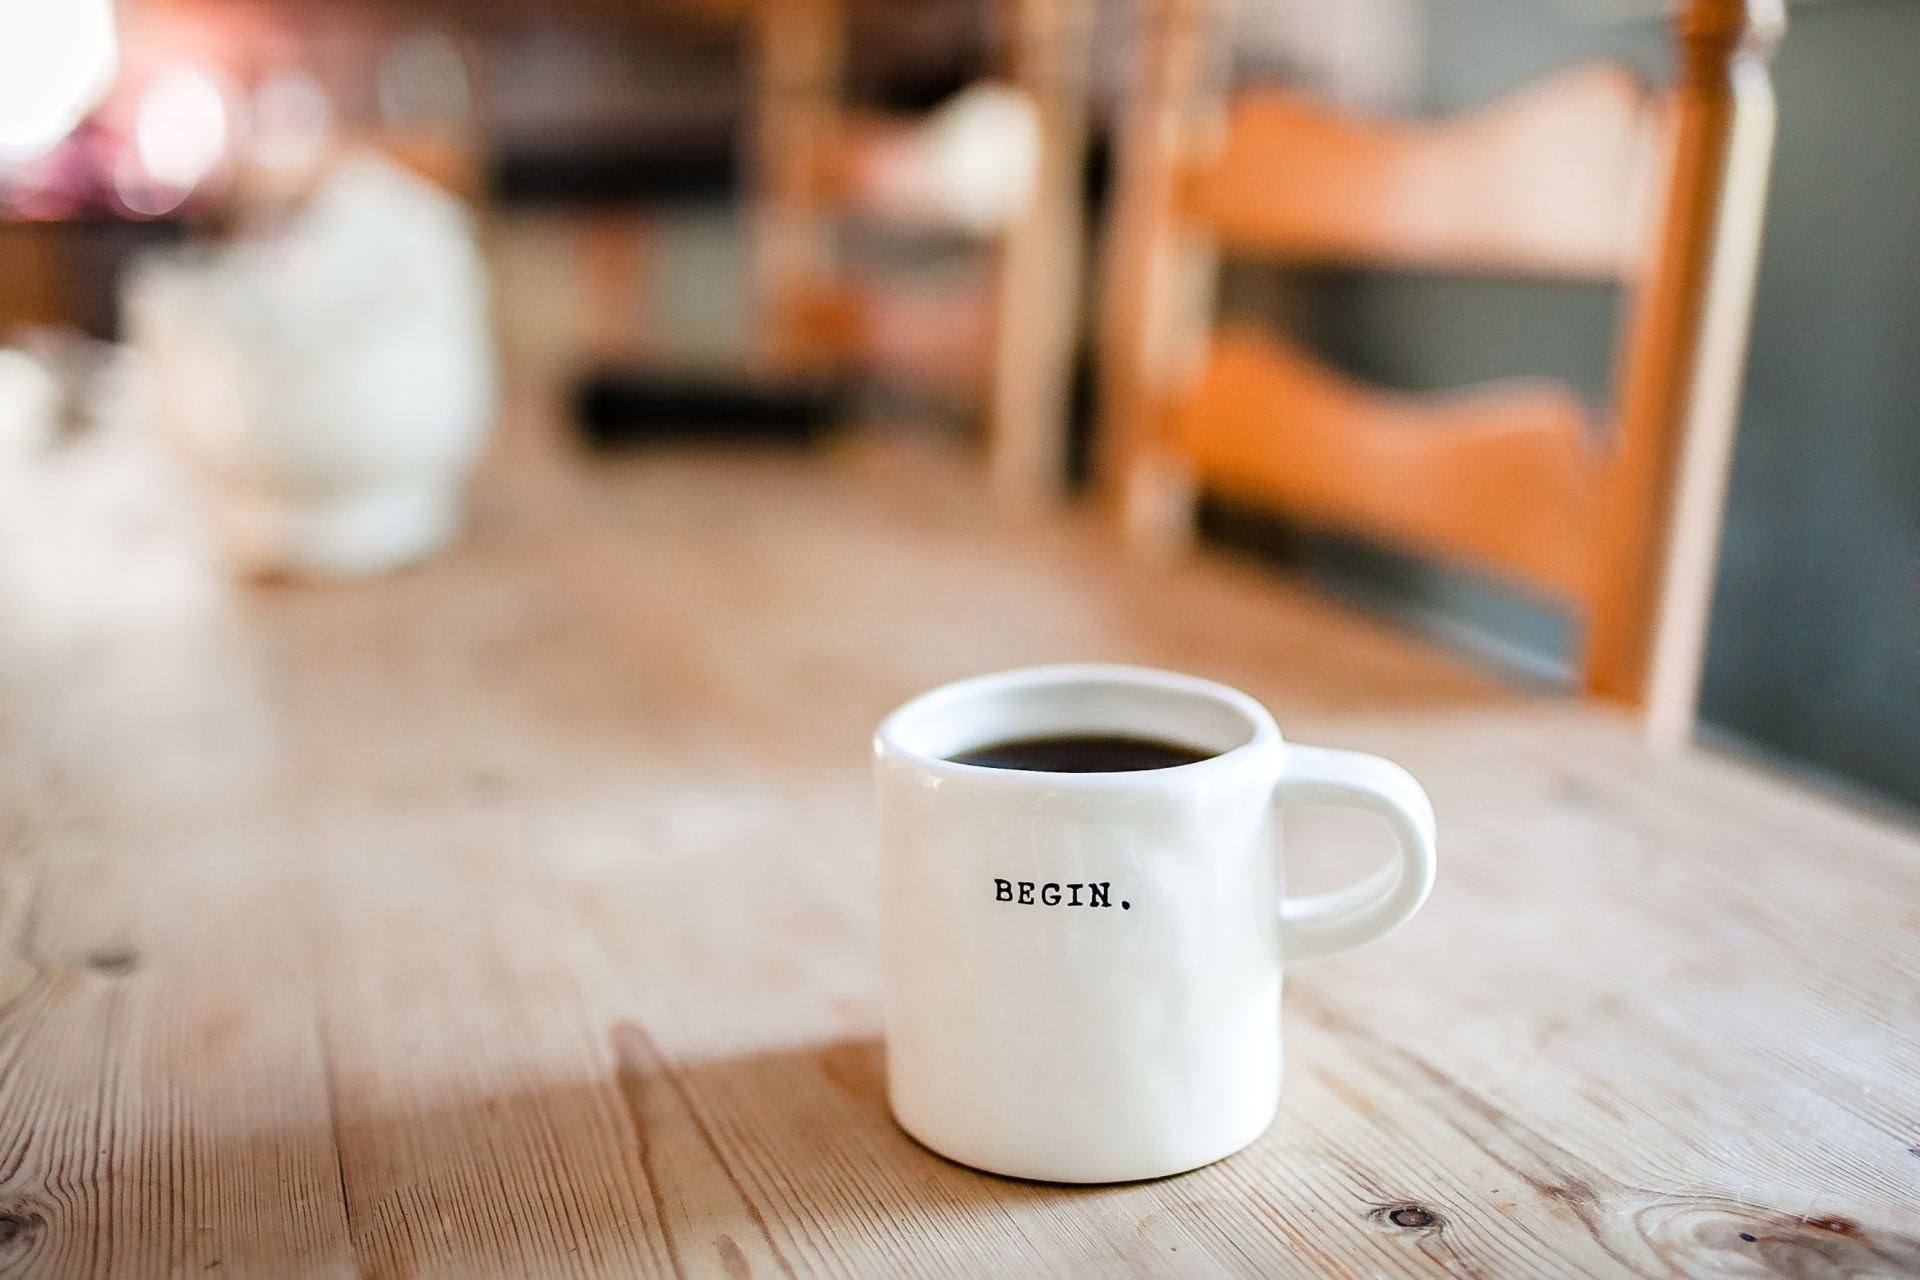 a cup with begin written on it